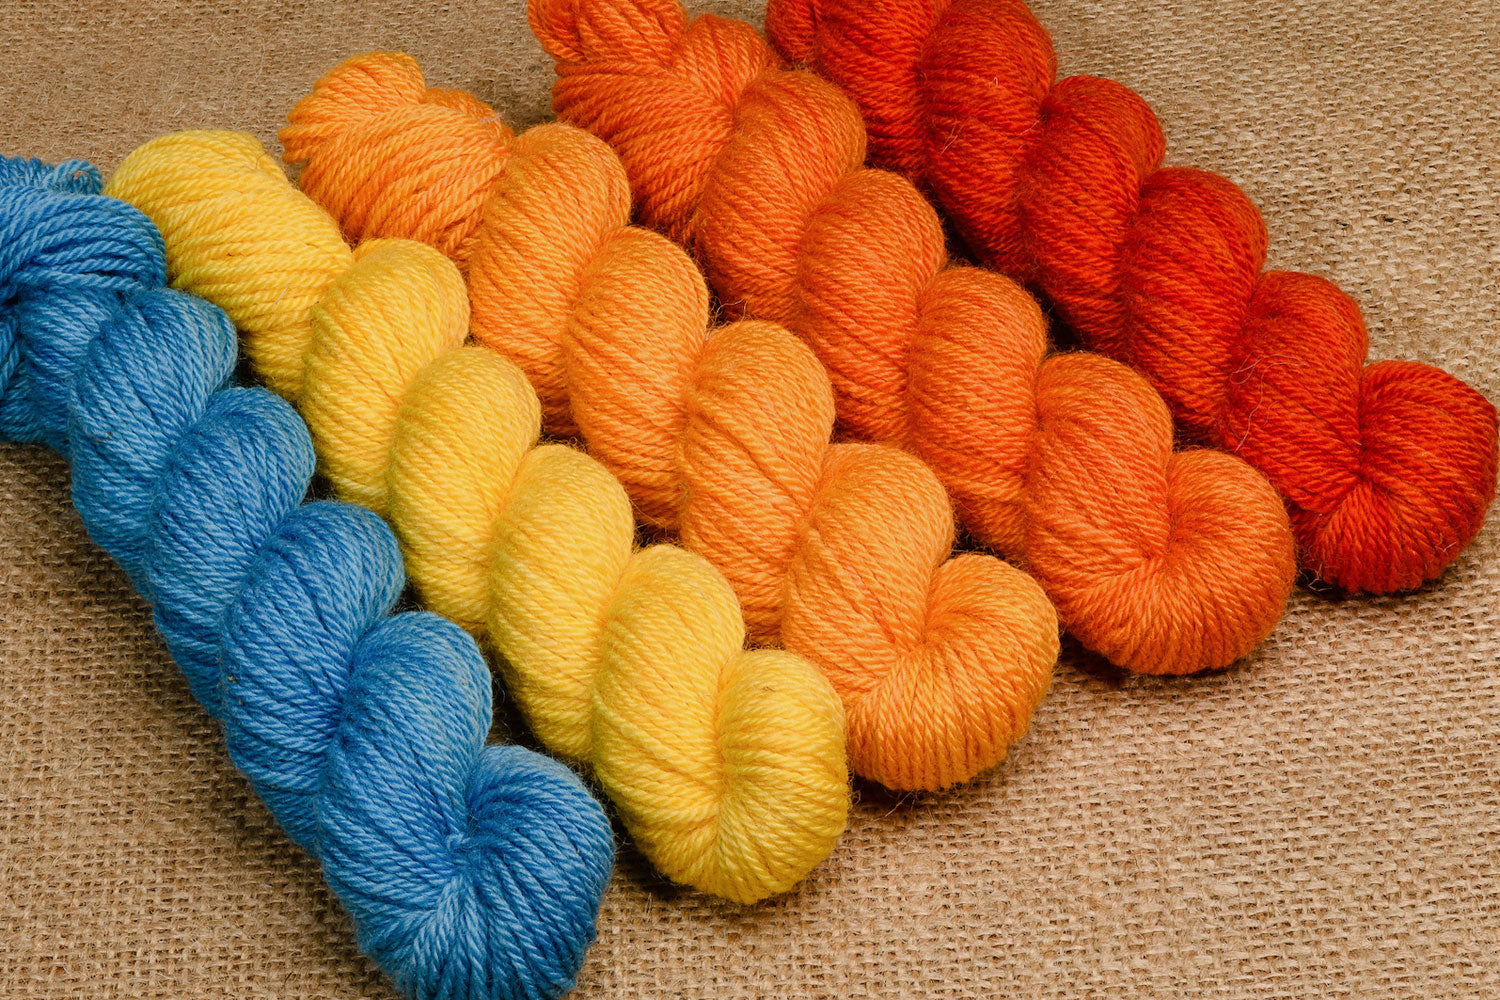 Elora Canadian hand-dyed yarn mini-skeins in Twenty-one Balloons